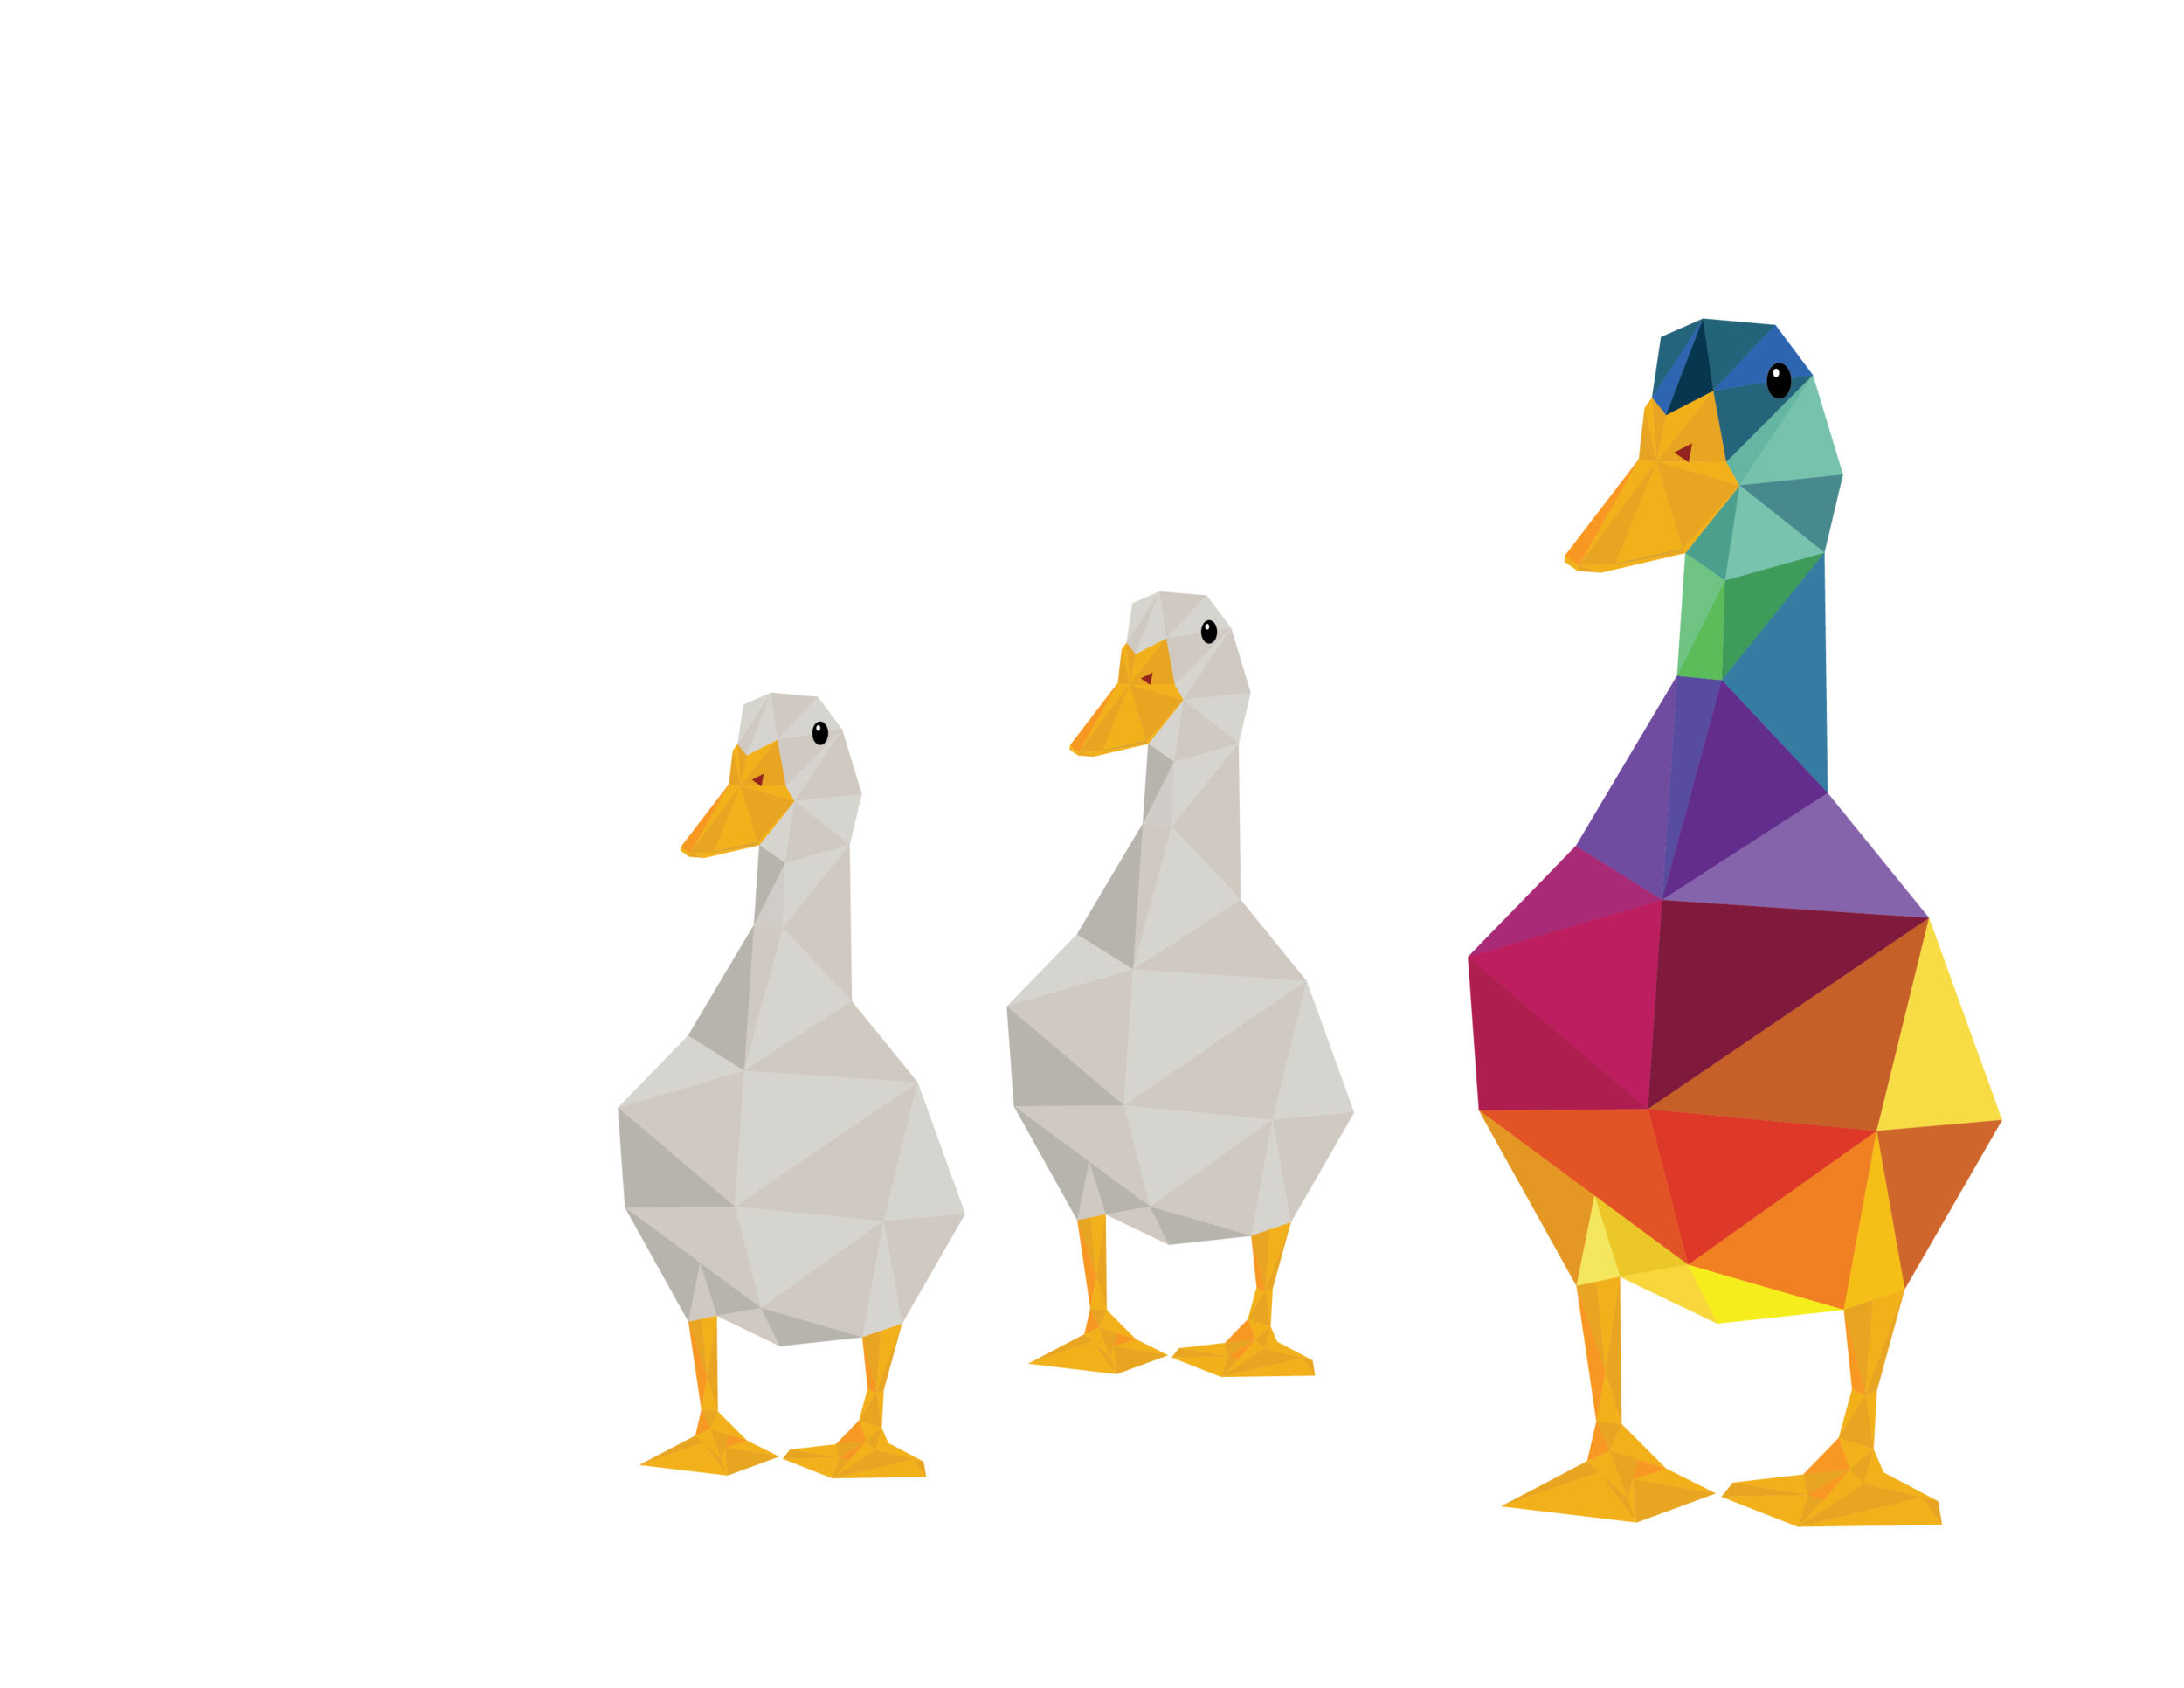 """Click for """"Duck Duck Goose""""terms."""